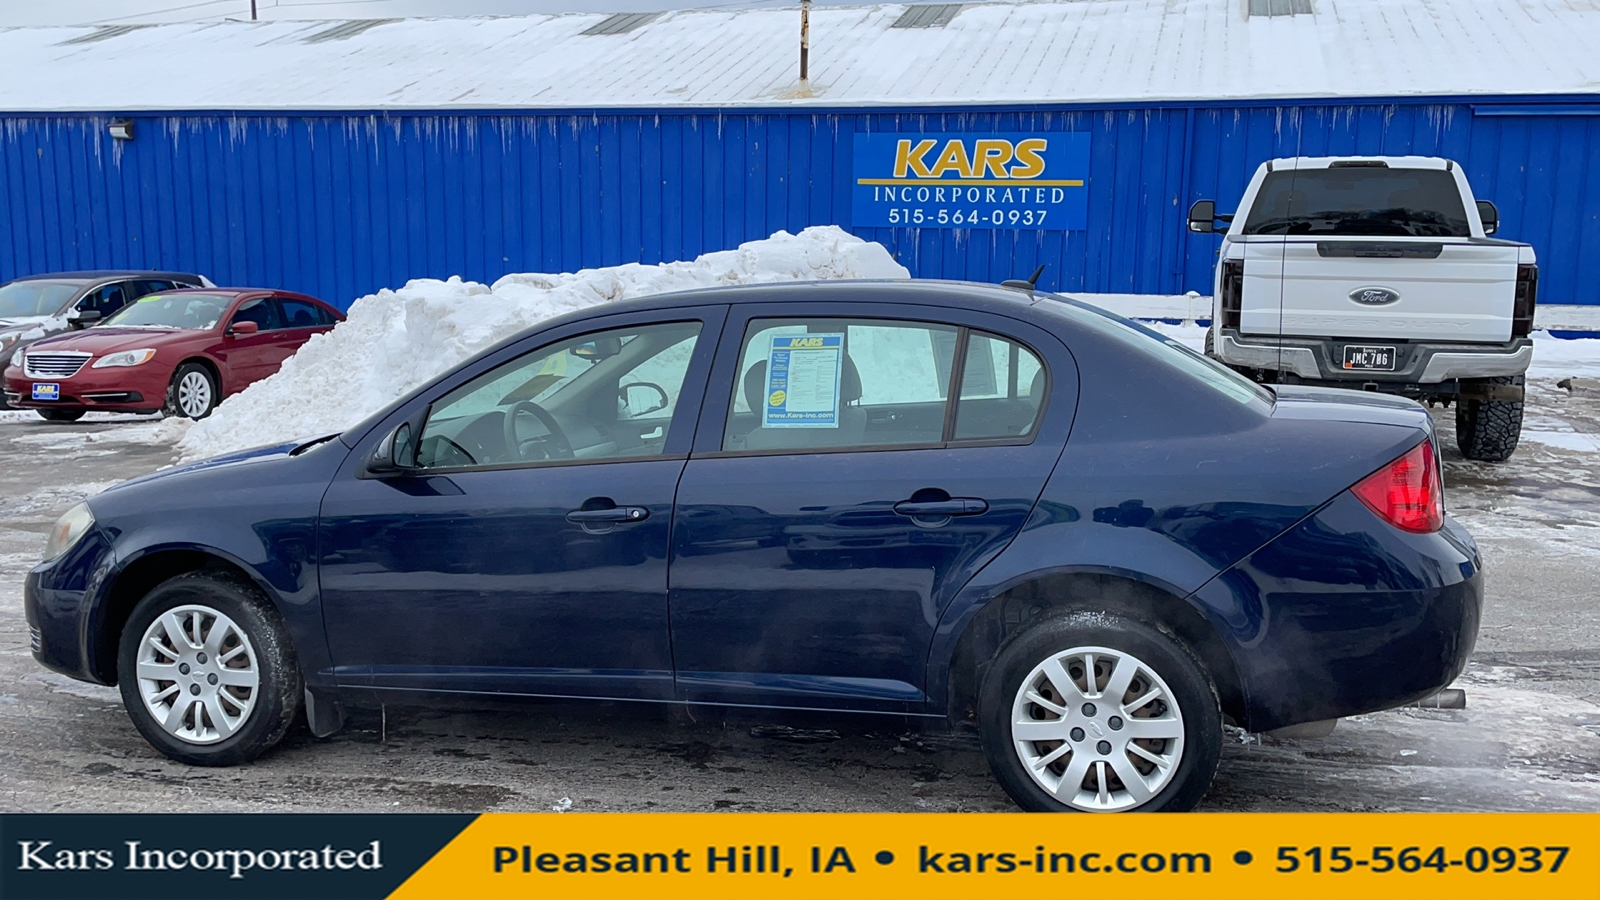 2010 Chevrolet Cobalt 1LT  - A36874P  - Kars Incorporated